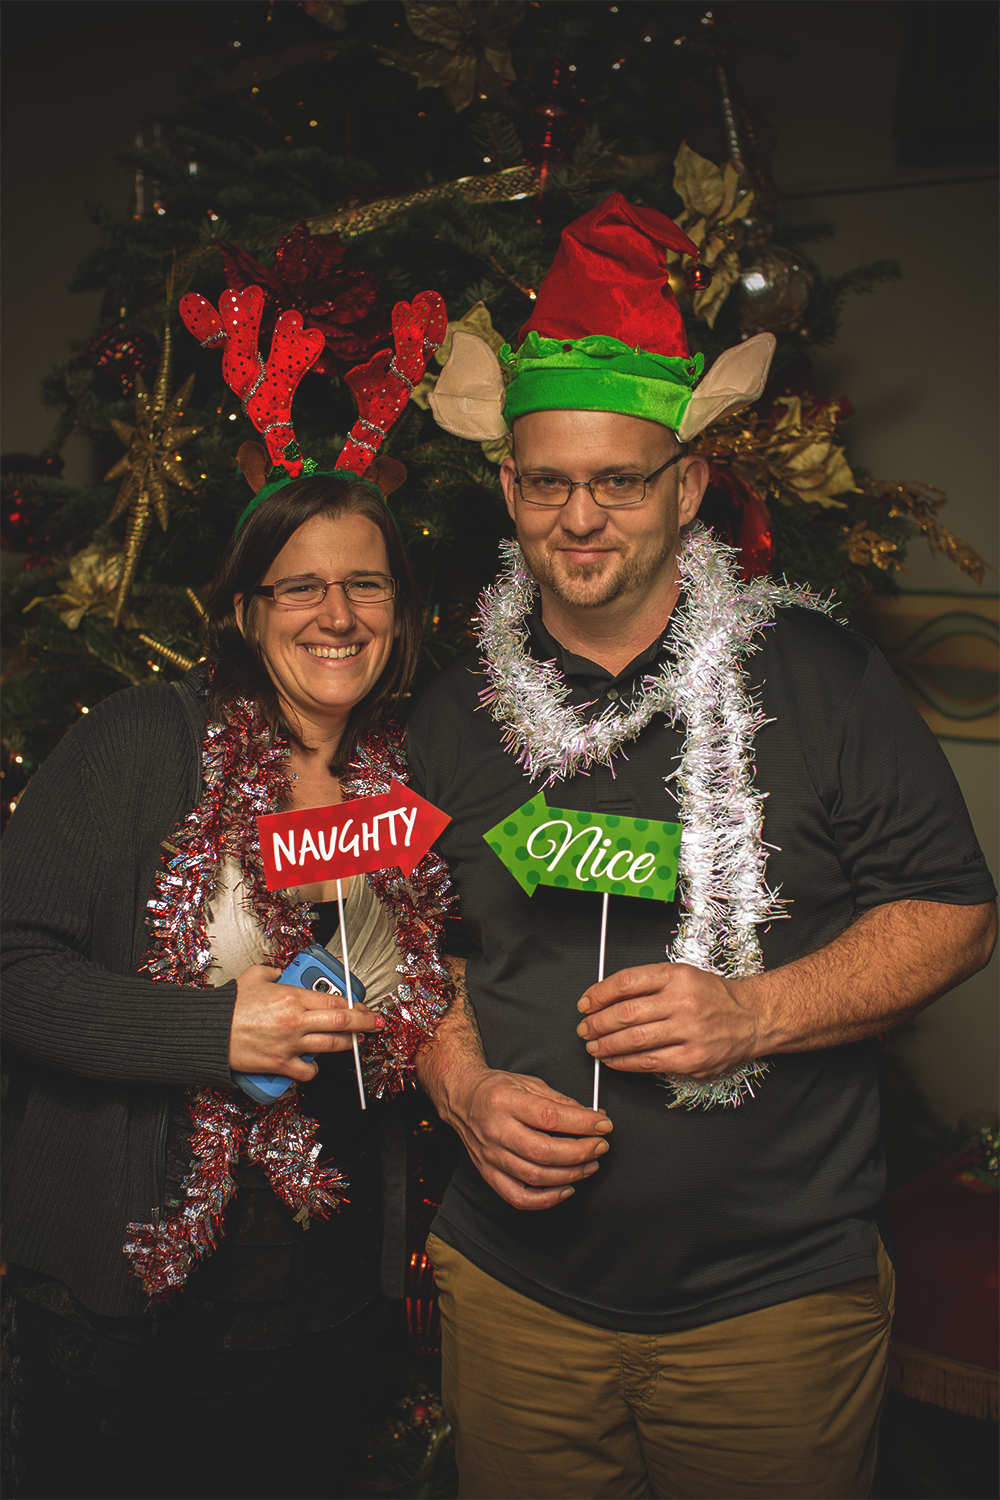 epproperties-vancouver-washington-xmas-party-photolga27.png